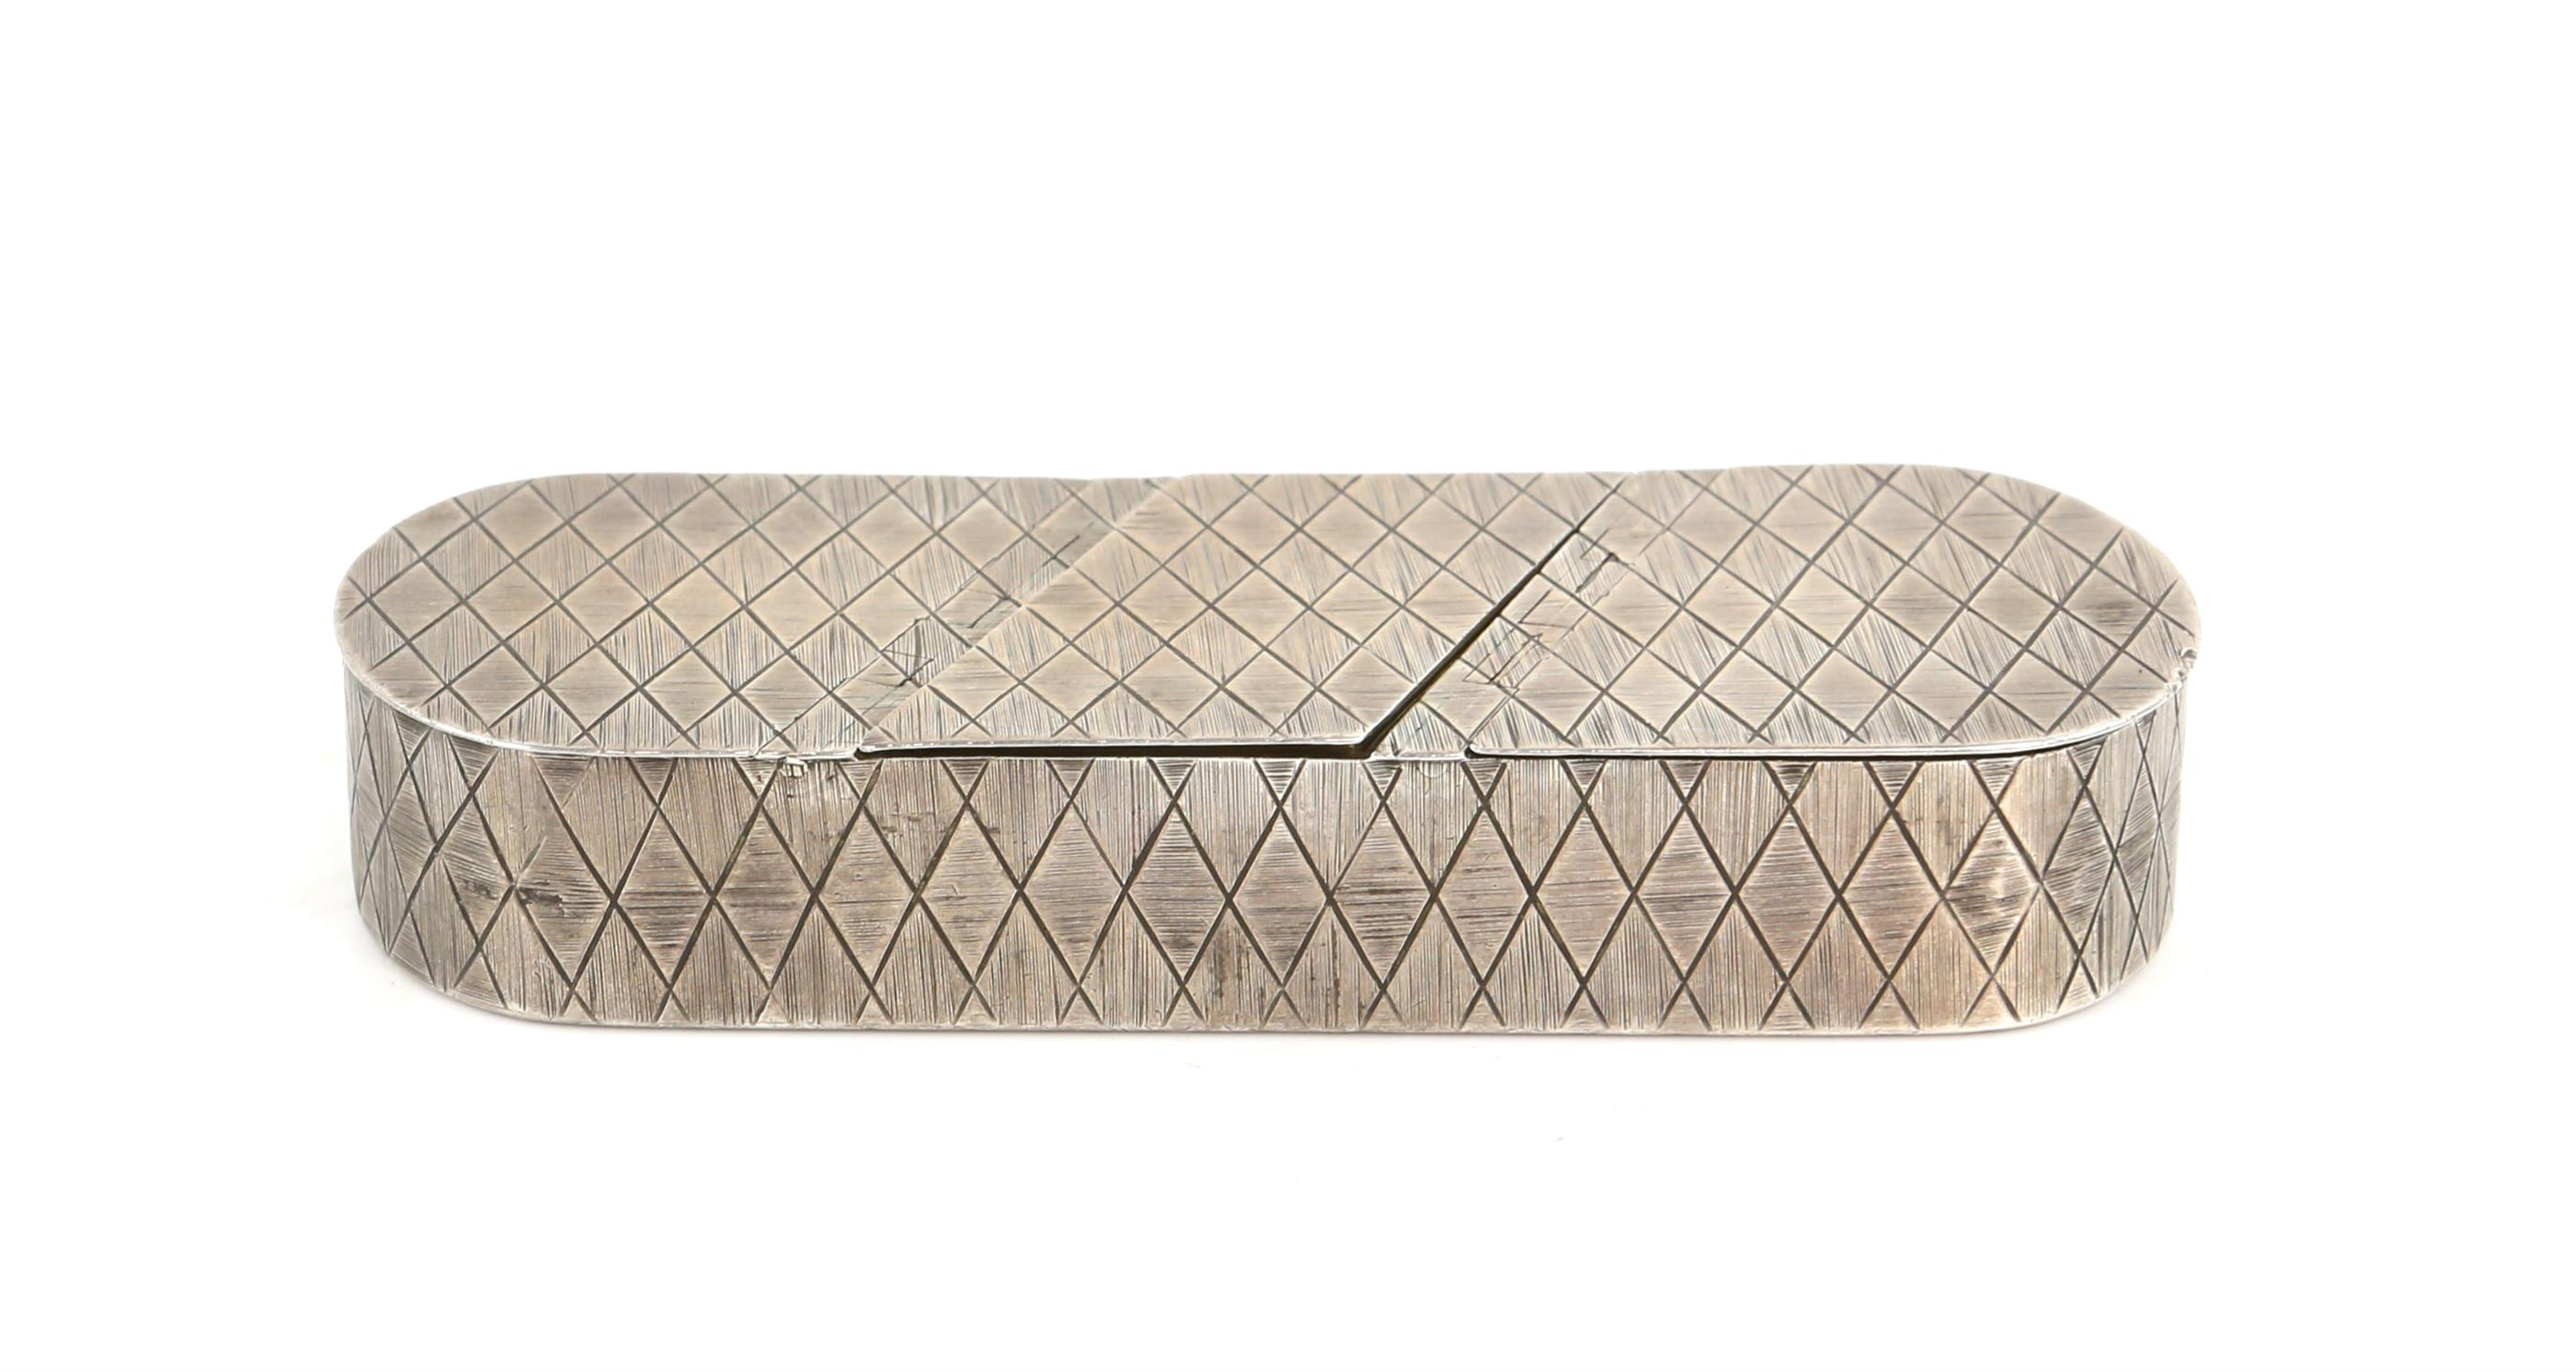 George III silver triple oval snuff box by Thomas Phipps & Edward Robinson, with diamond patterned